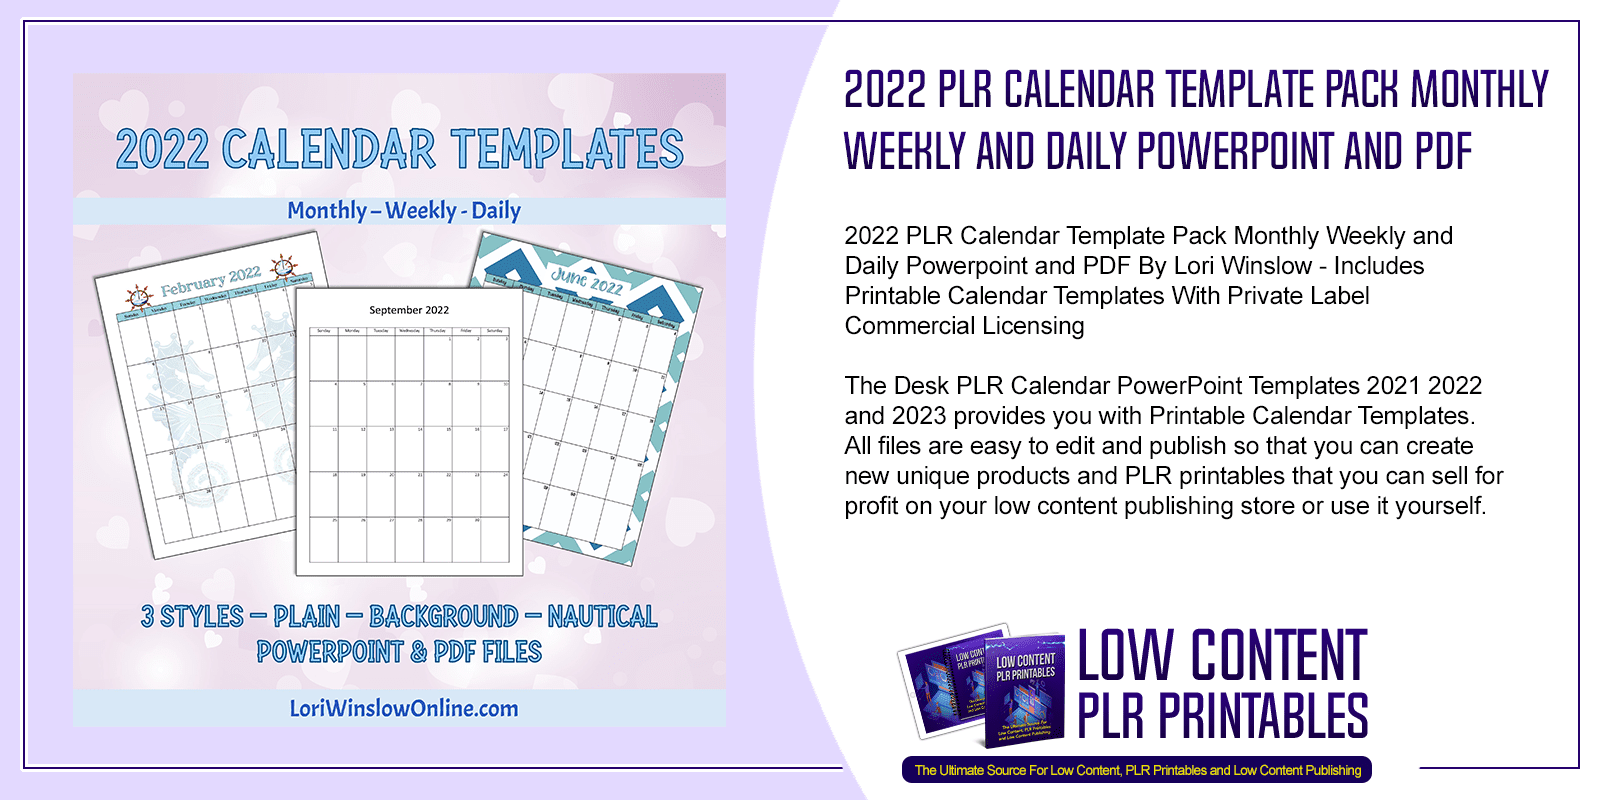 2022 PLR Calendar Template Pack Monthly Weekly and Daily Powerpoint and PDF